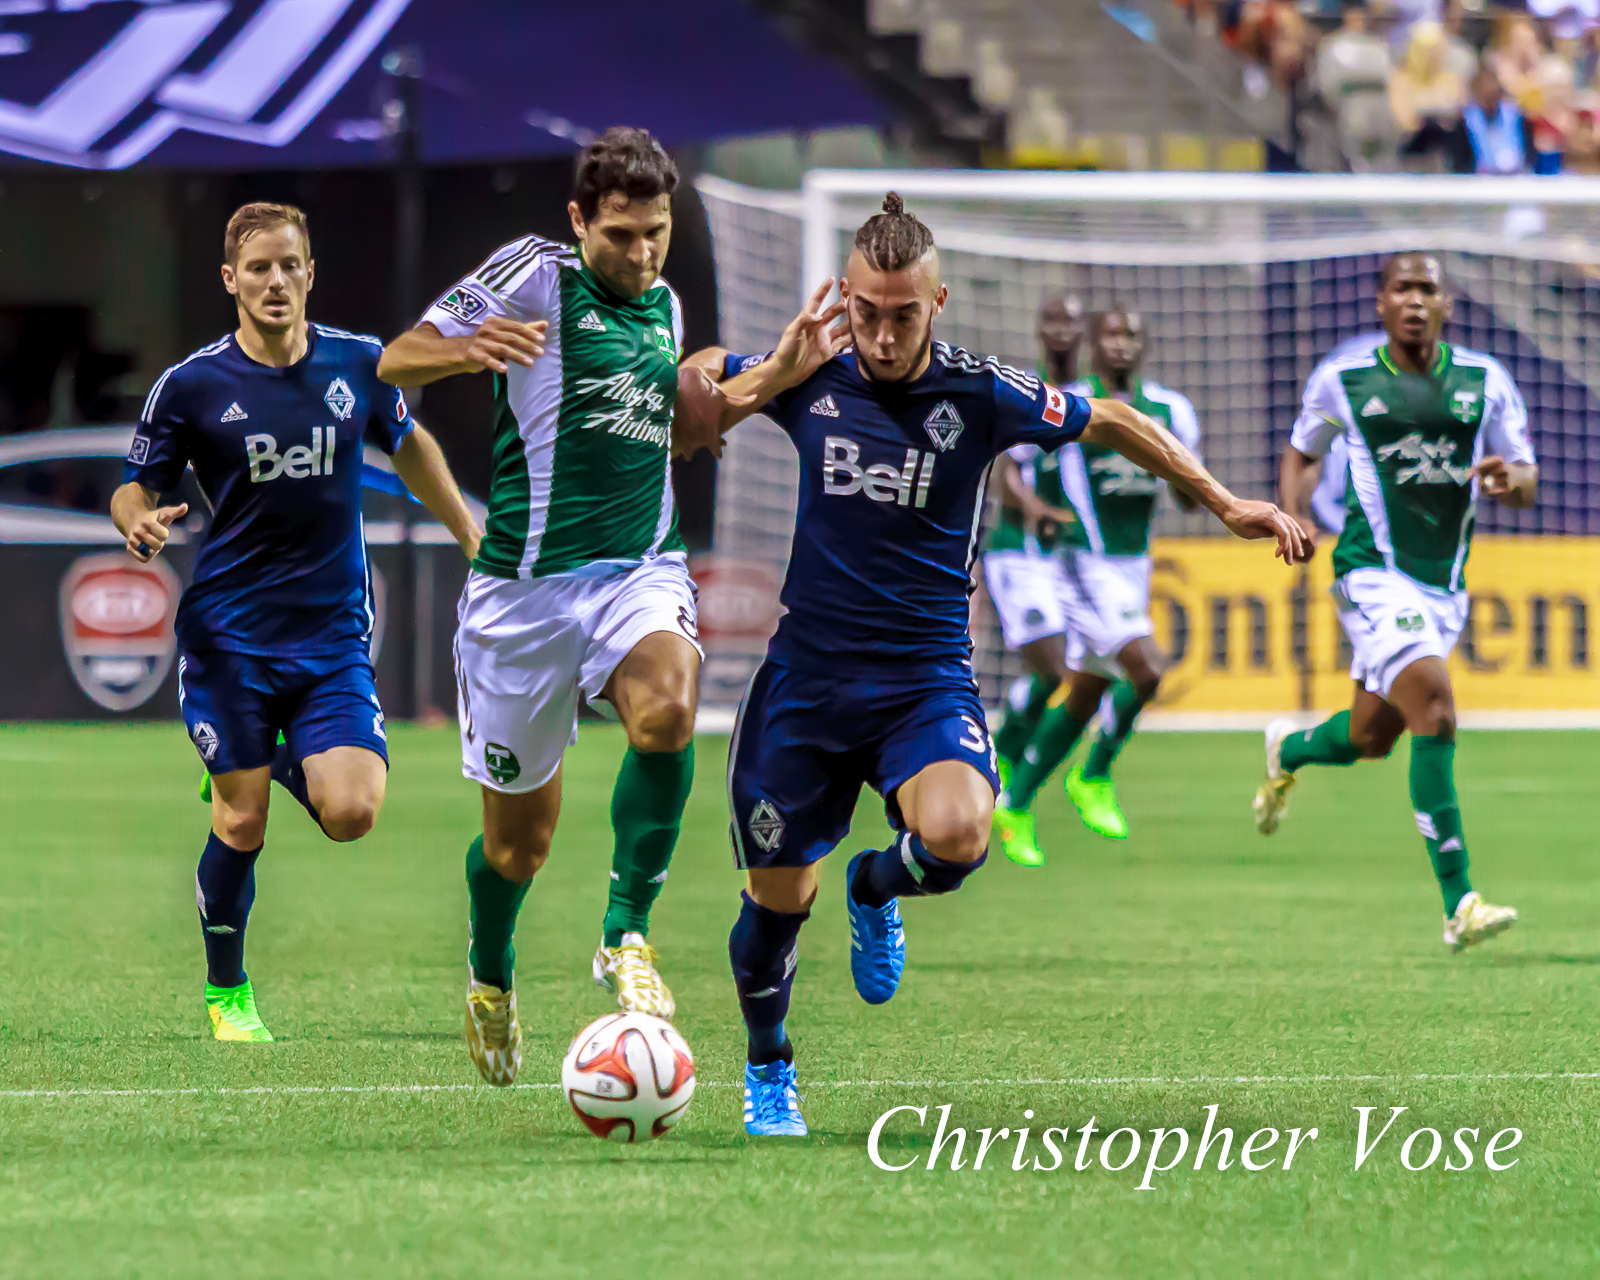 Diego Valeri had a quiet night, but then again, so did Russell Teibert, as they cancelled each other out.